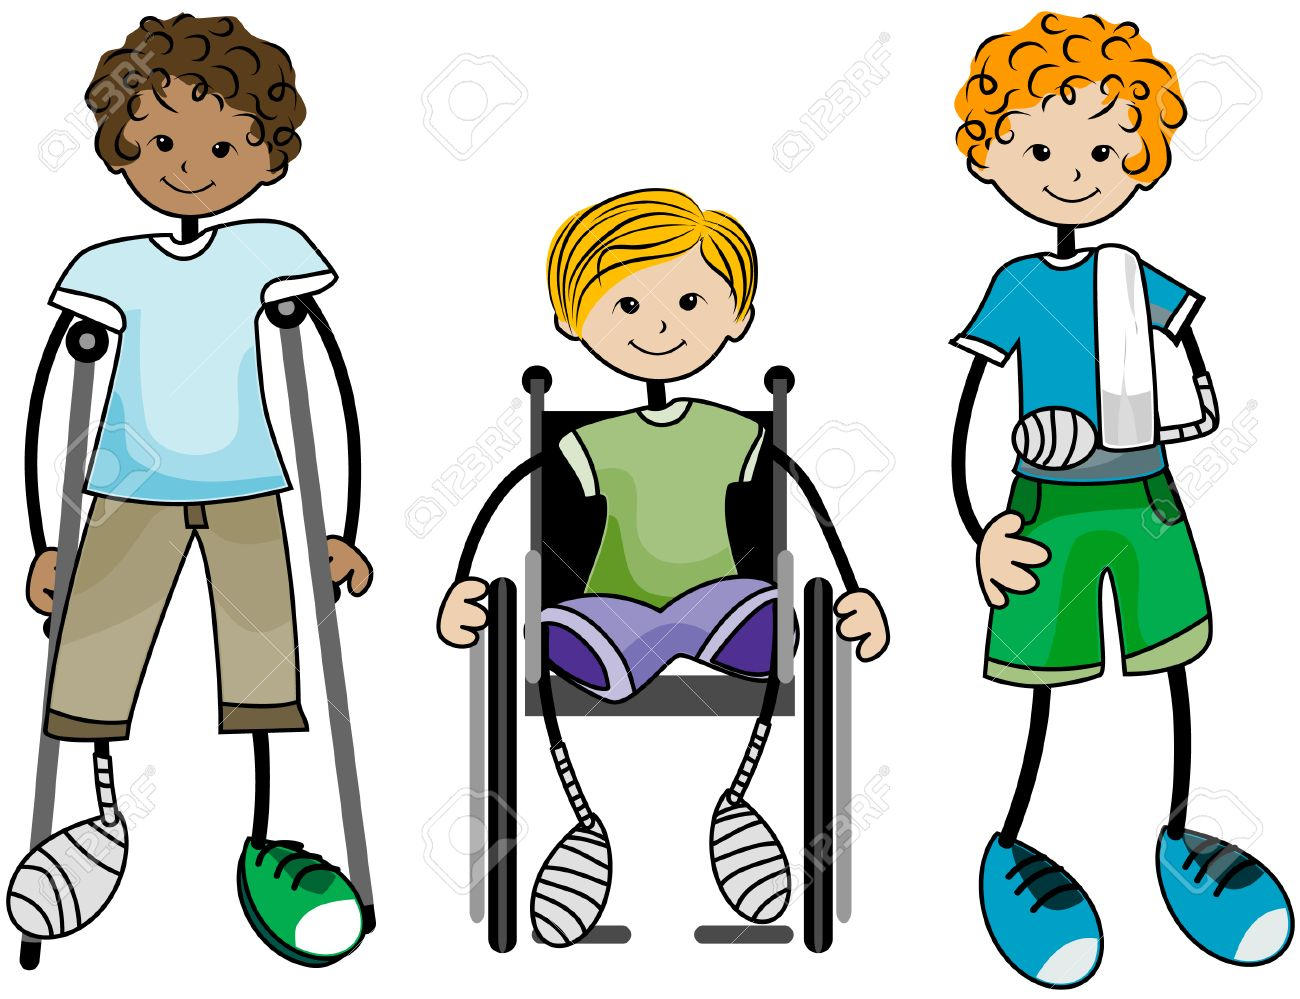 Cartoon physical therapy - Injured Kids With Clipping Path Stock Vector 4687703